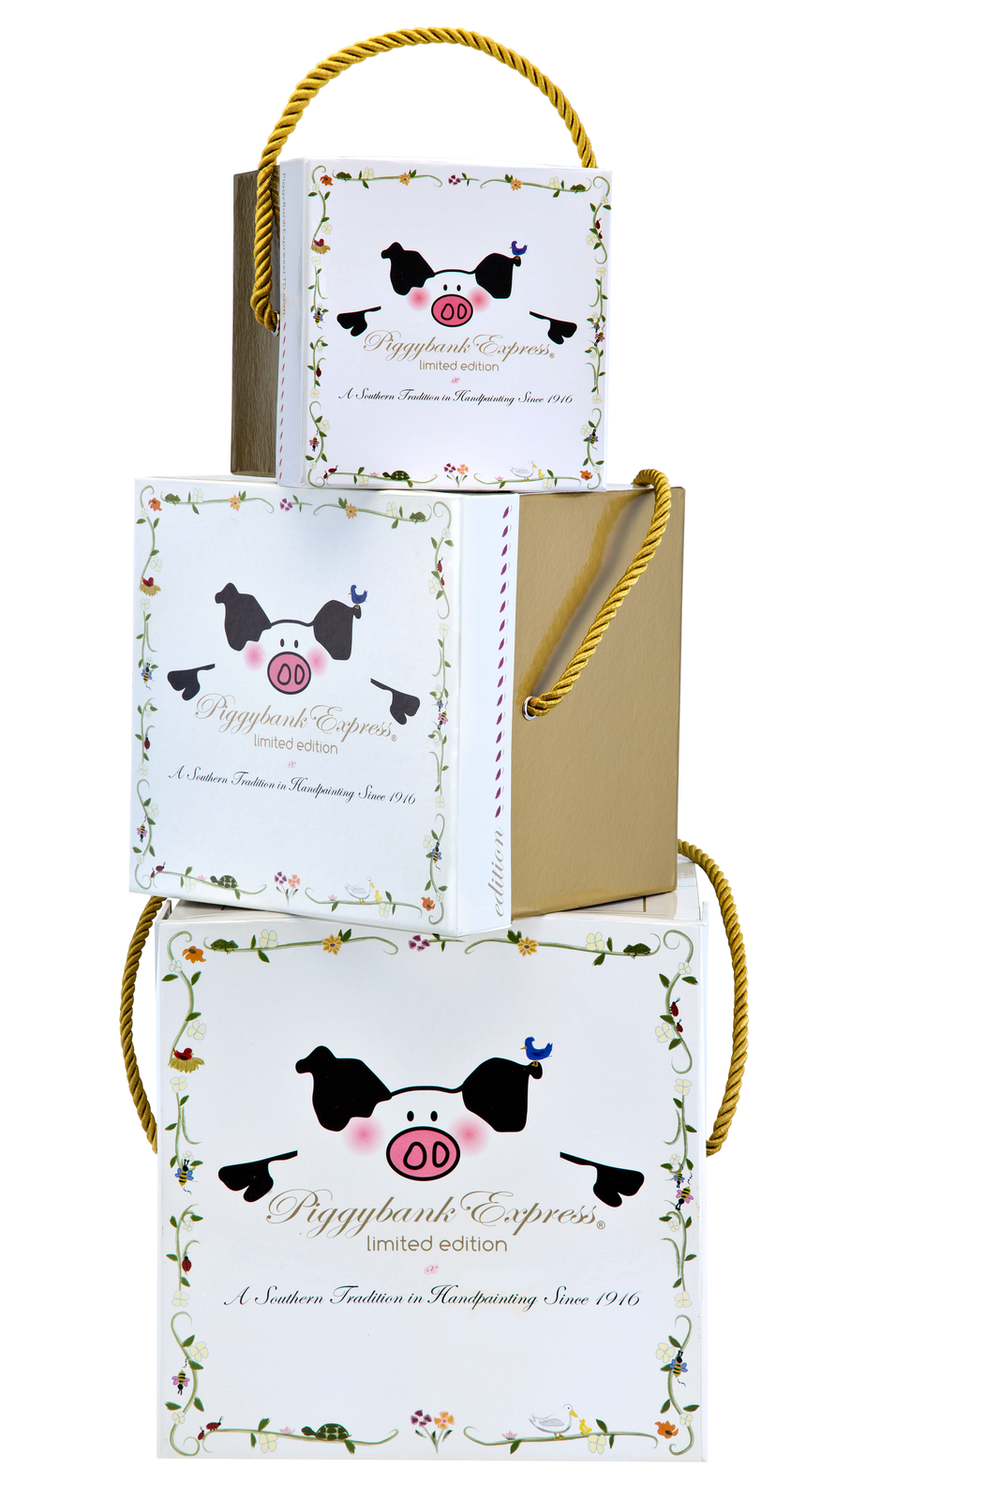 Piggy Bank Gift Box - Each piggy comes with it's own beautiful gift box you'll want to keep. Each is lined with black velvet in which the piggy is snuggly placed for safe shipping.